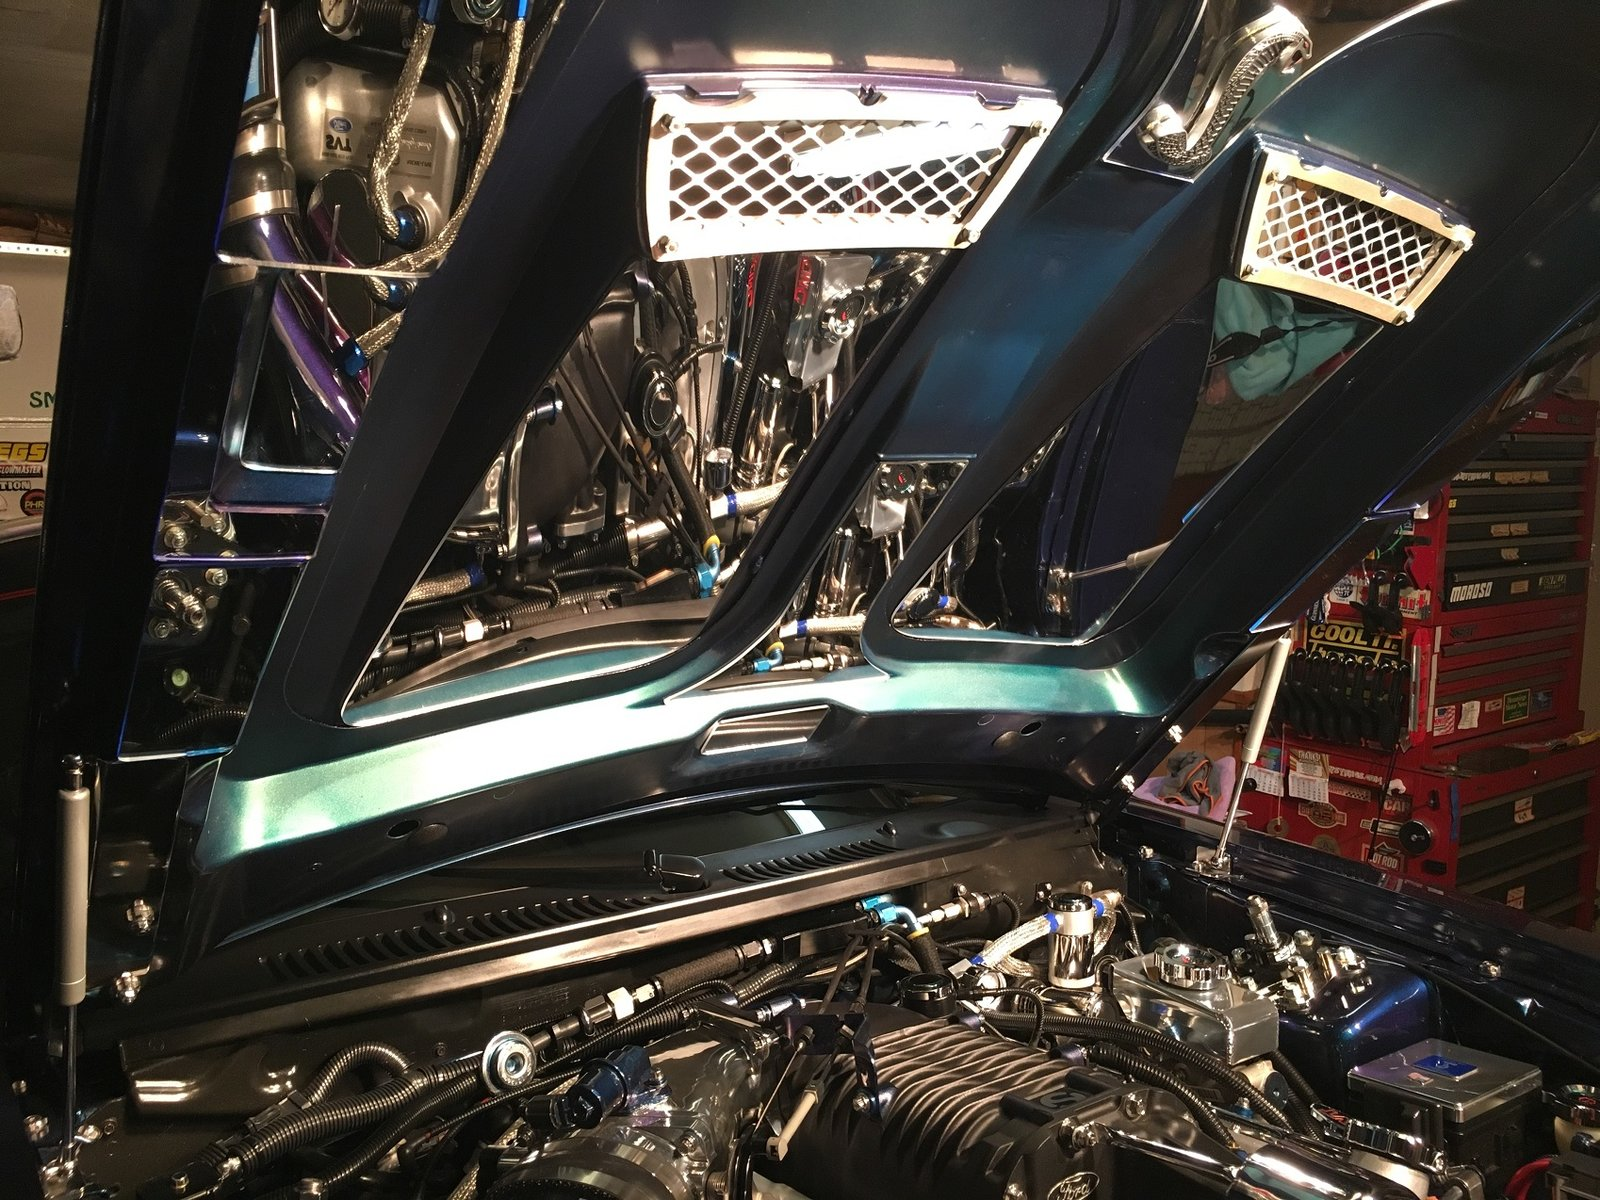 Mirrored Engine Bay 005.JPG